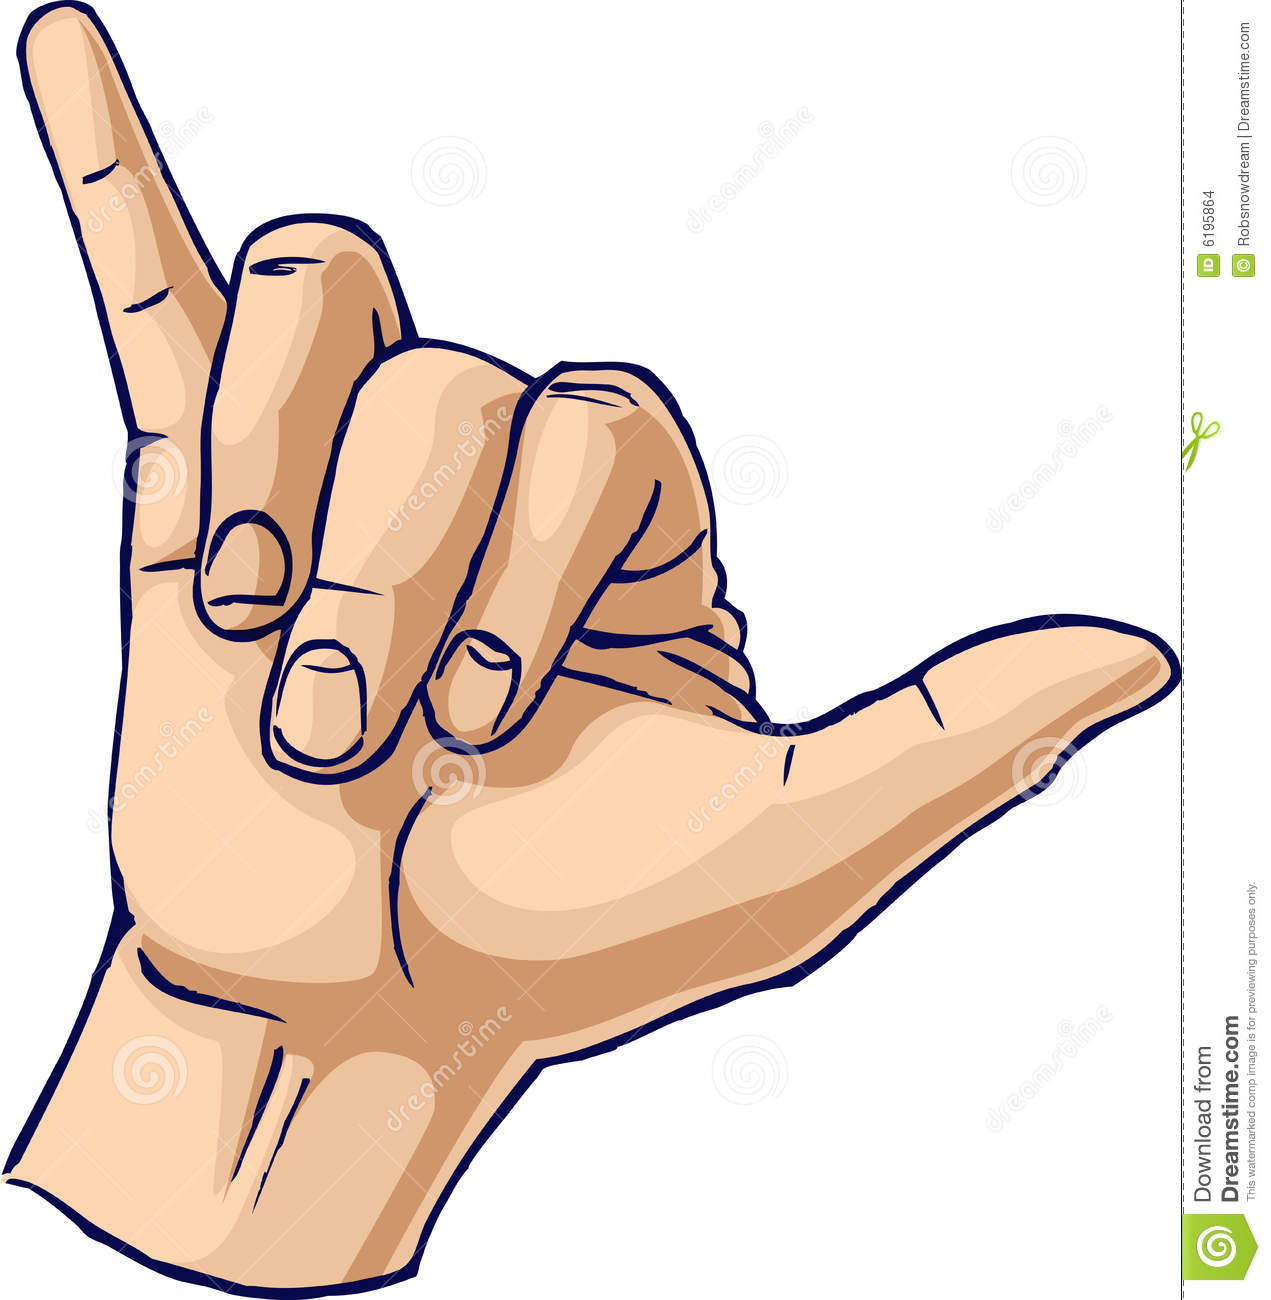 Cool Hand Gesture Stock Images.